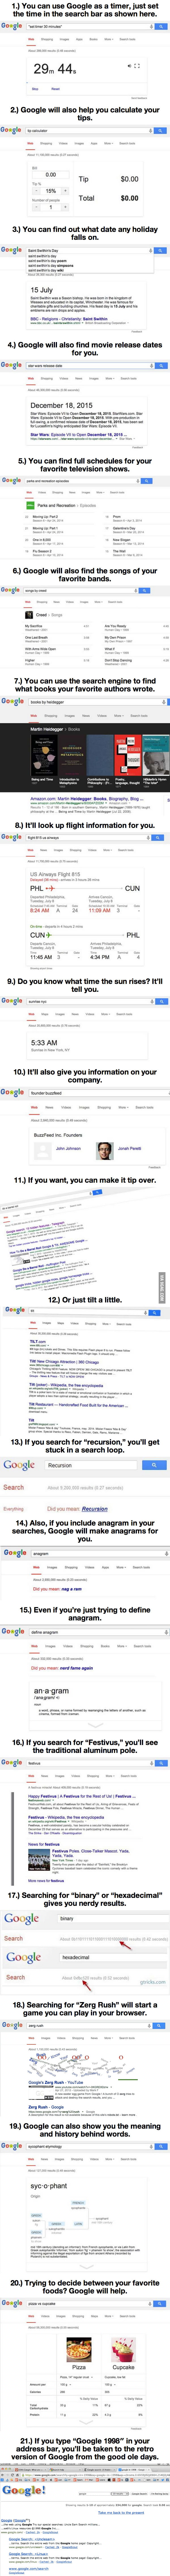 After You Learn These 21 Google Tricks, The Internet Will Never Be The Same.